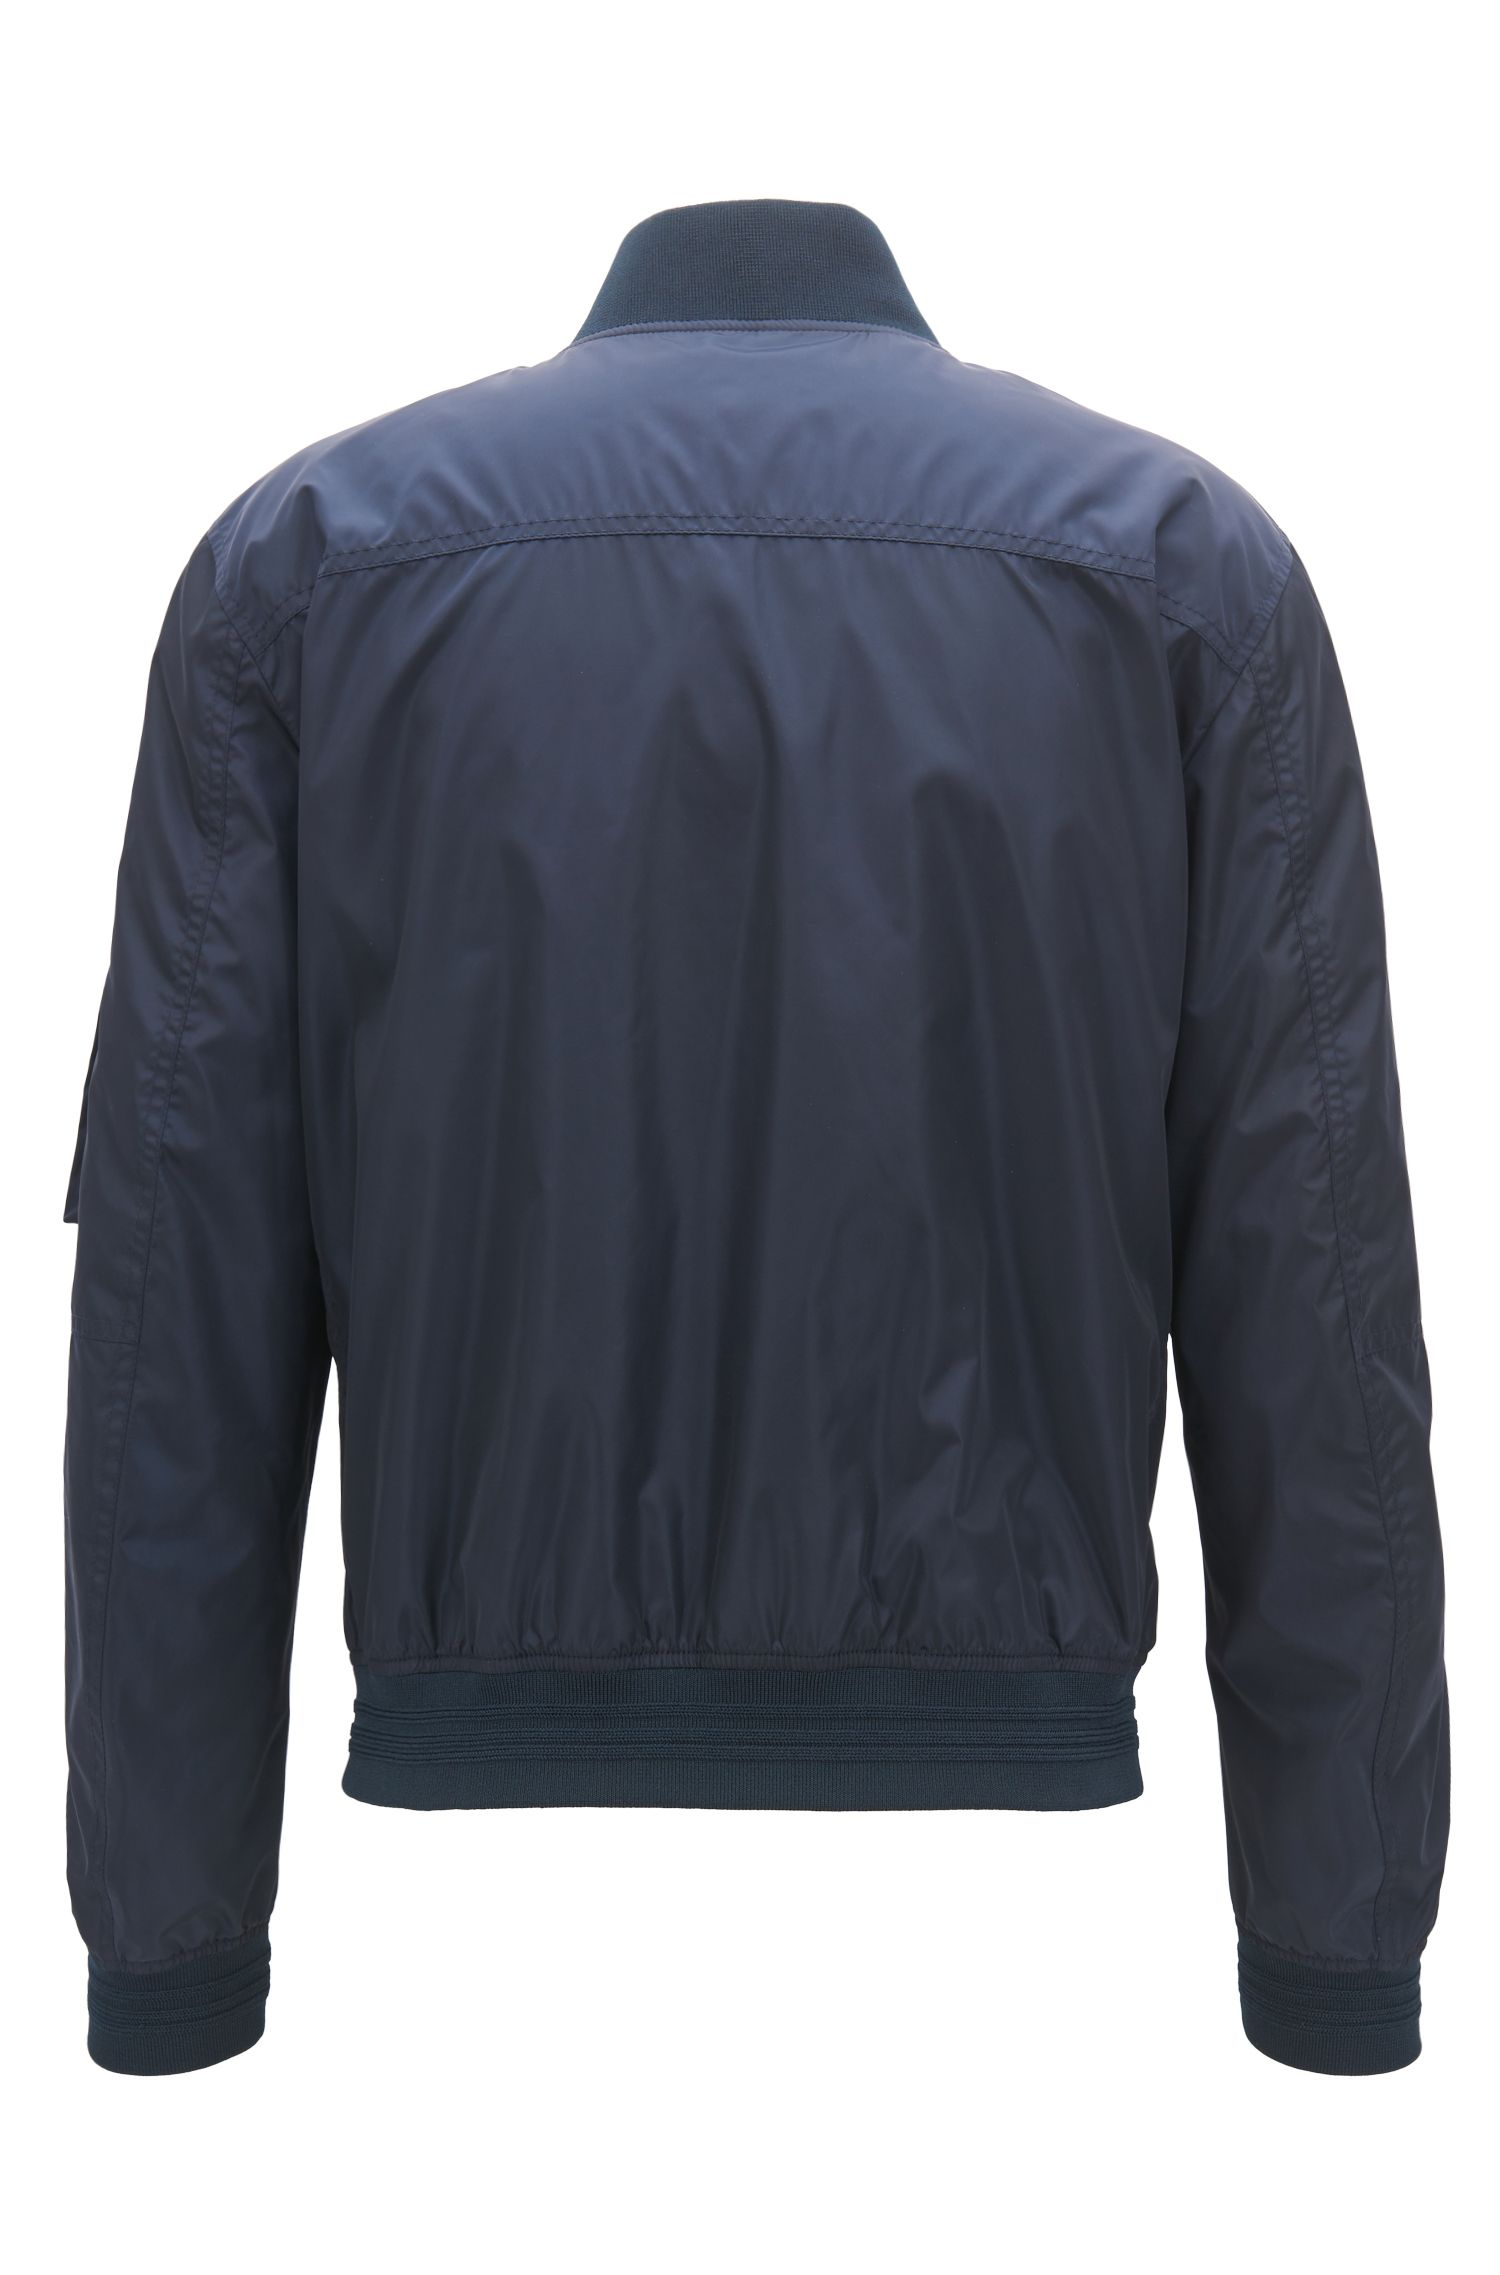 Water-repellent blouson bomber jacket with utility pocket